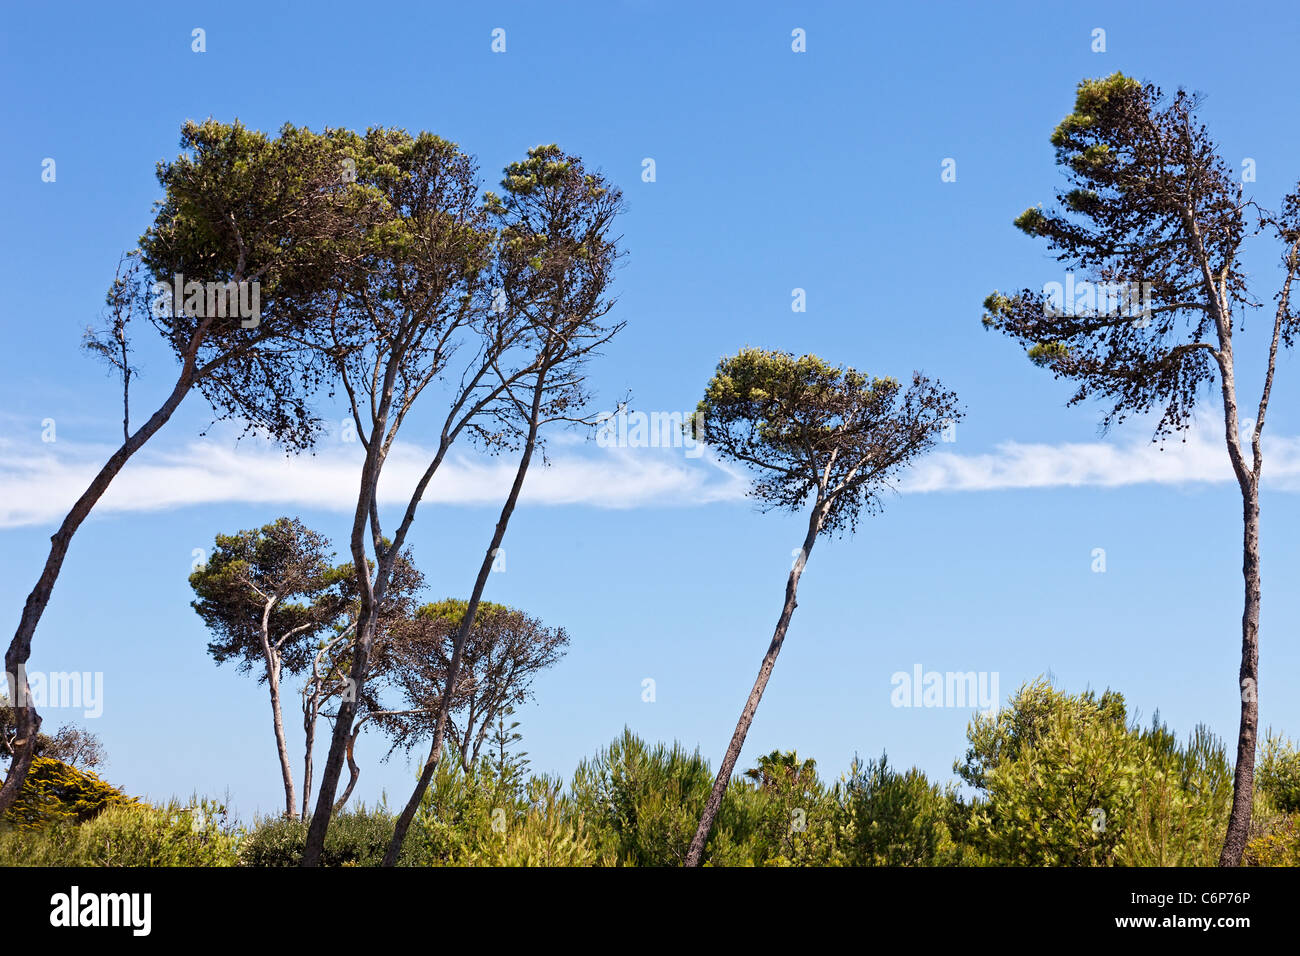 Lofty trees against the blue sky in windy weather. Cascais, Portugal. Stock Photo